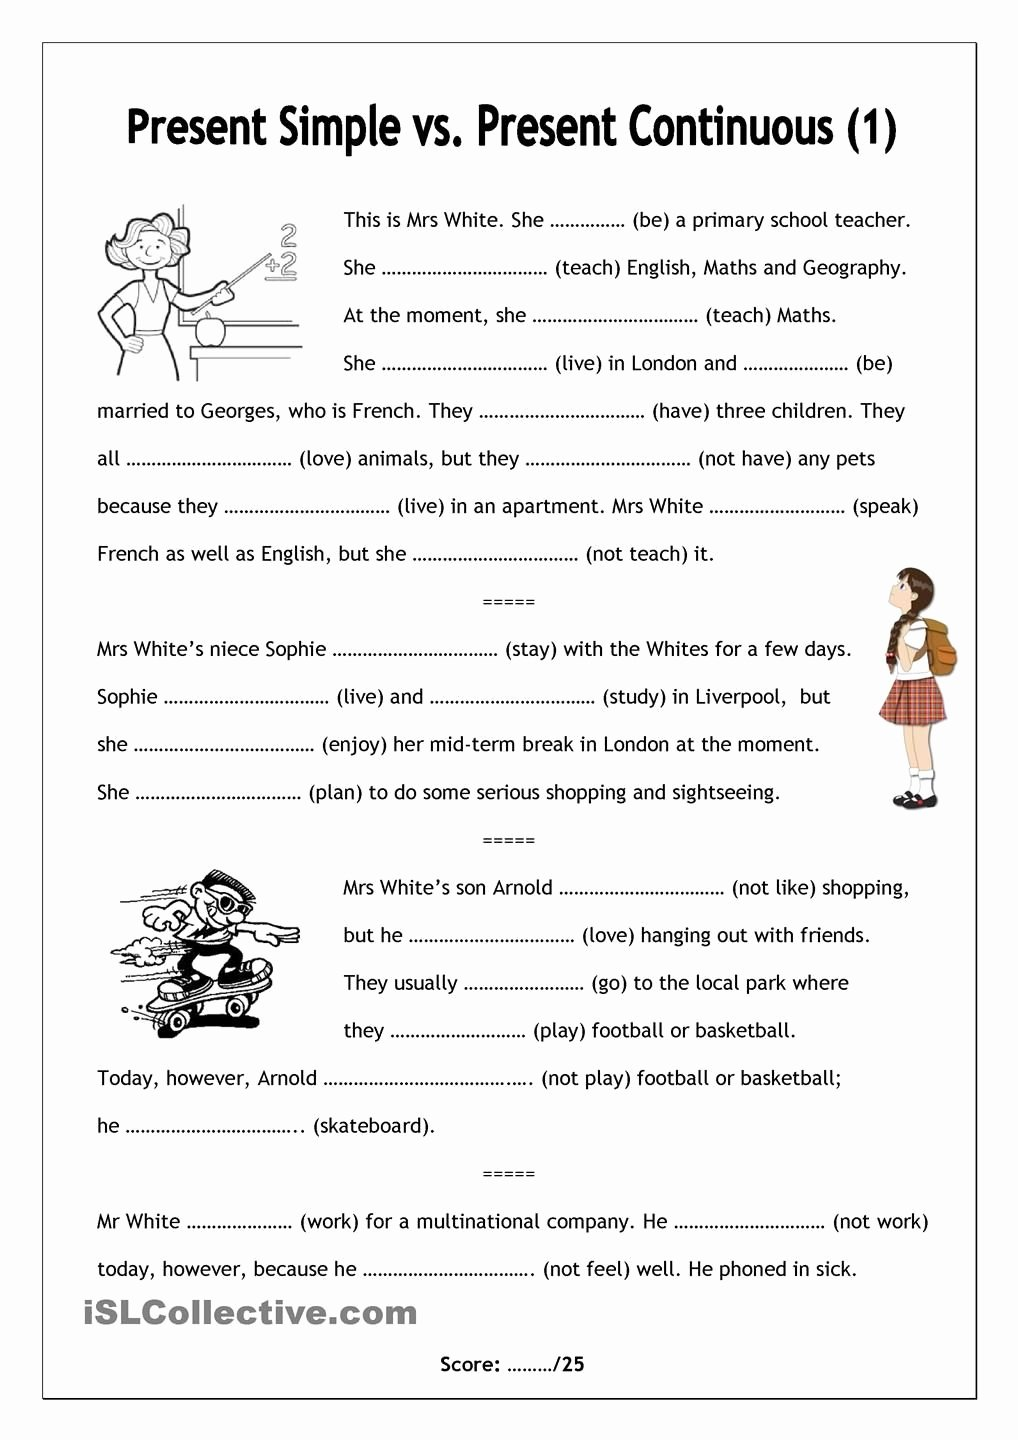 Present Progressive Spanish Worksheet Answers Kids No Frills Worksheet for All Ages Present Simple Vs Present